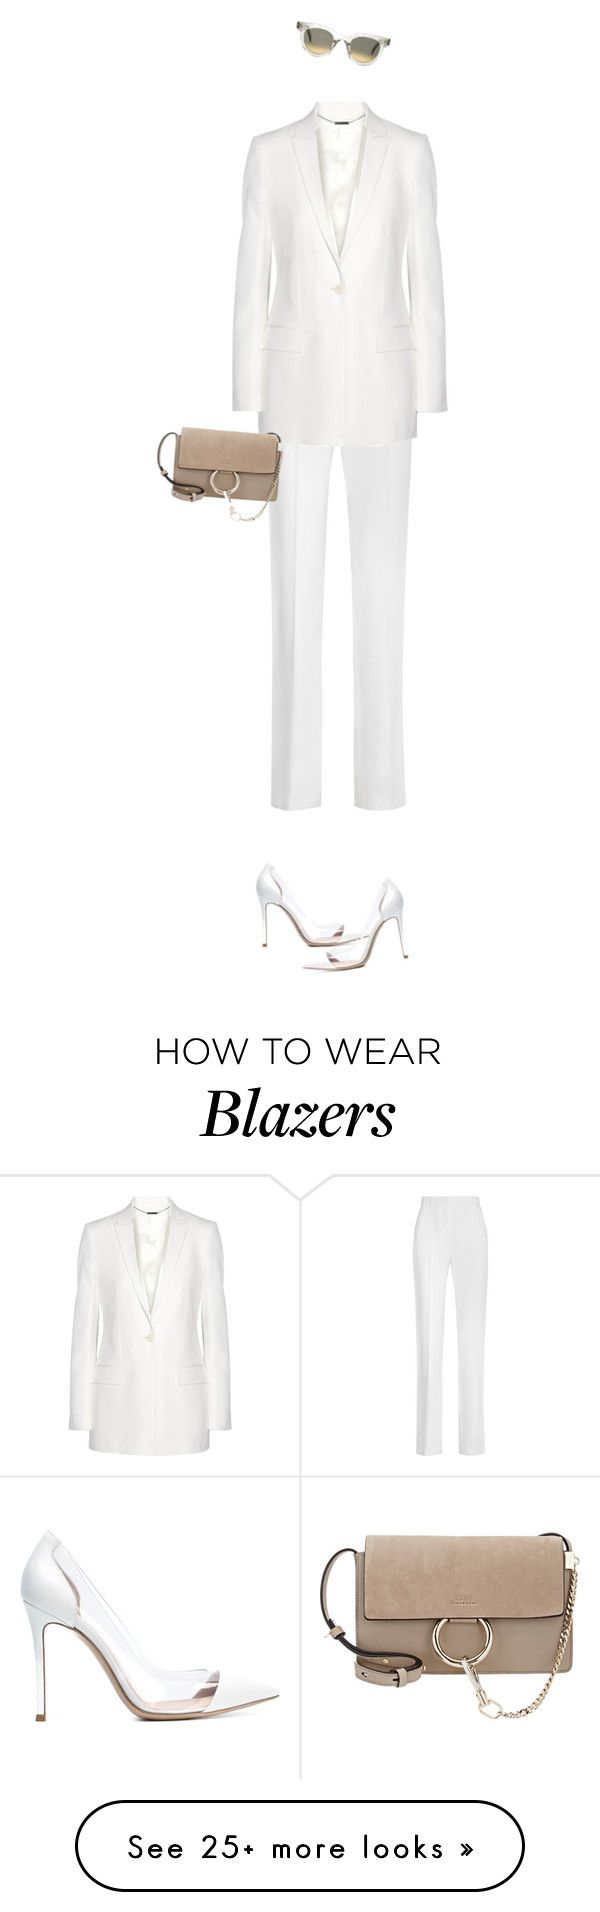 """""""but that doesn't mean you can do this to me"""" by payypayy on Polyvore featuring Givenchy, Chloé, Gianvito Rossi, CÉLINE, women's clothing, women, female, woman, misses and juniors"""